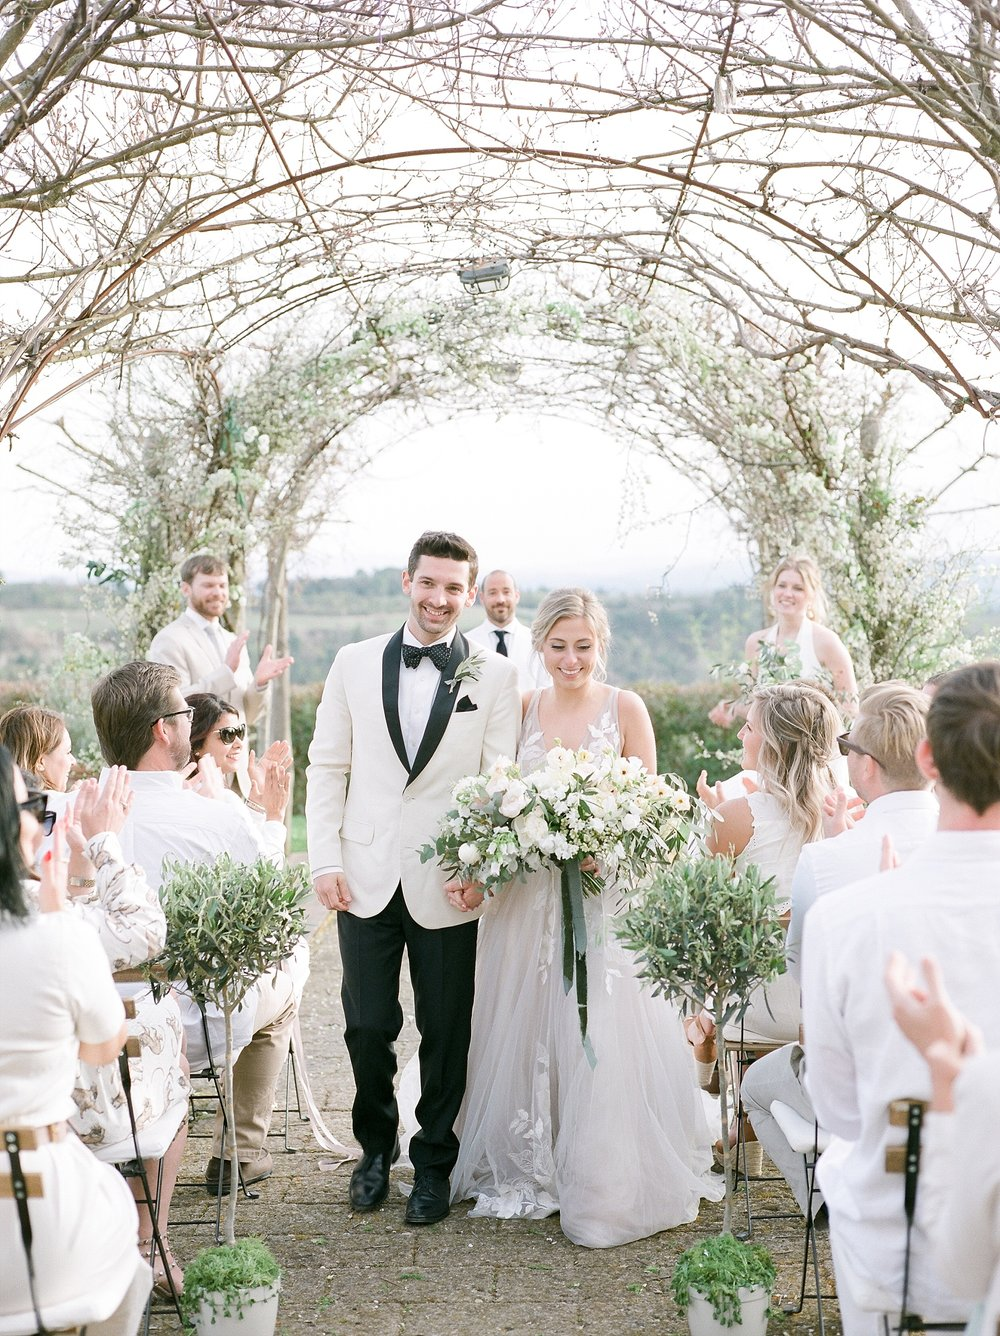 All White Destination Wedding in the Hills of Tuscany Italy at Estate Borgo Petrognano by Kelsi Kliethermes Photography_0051.jpg